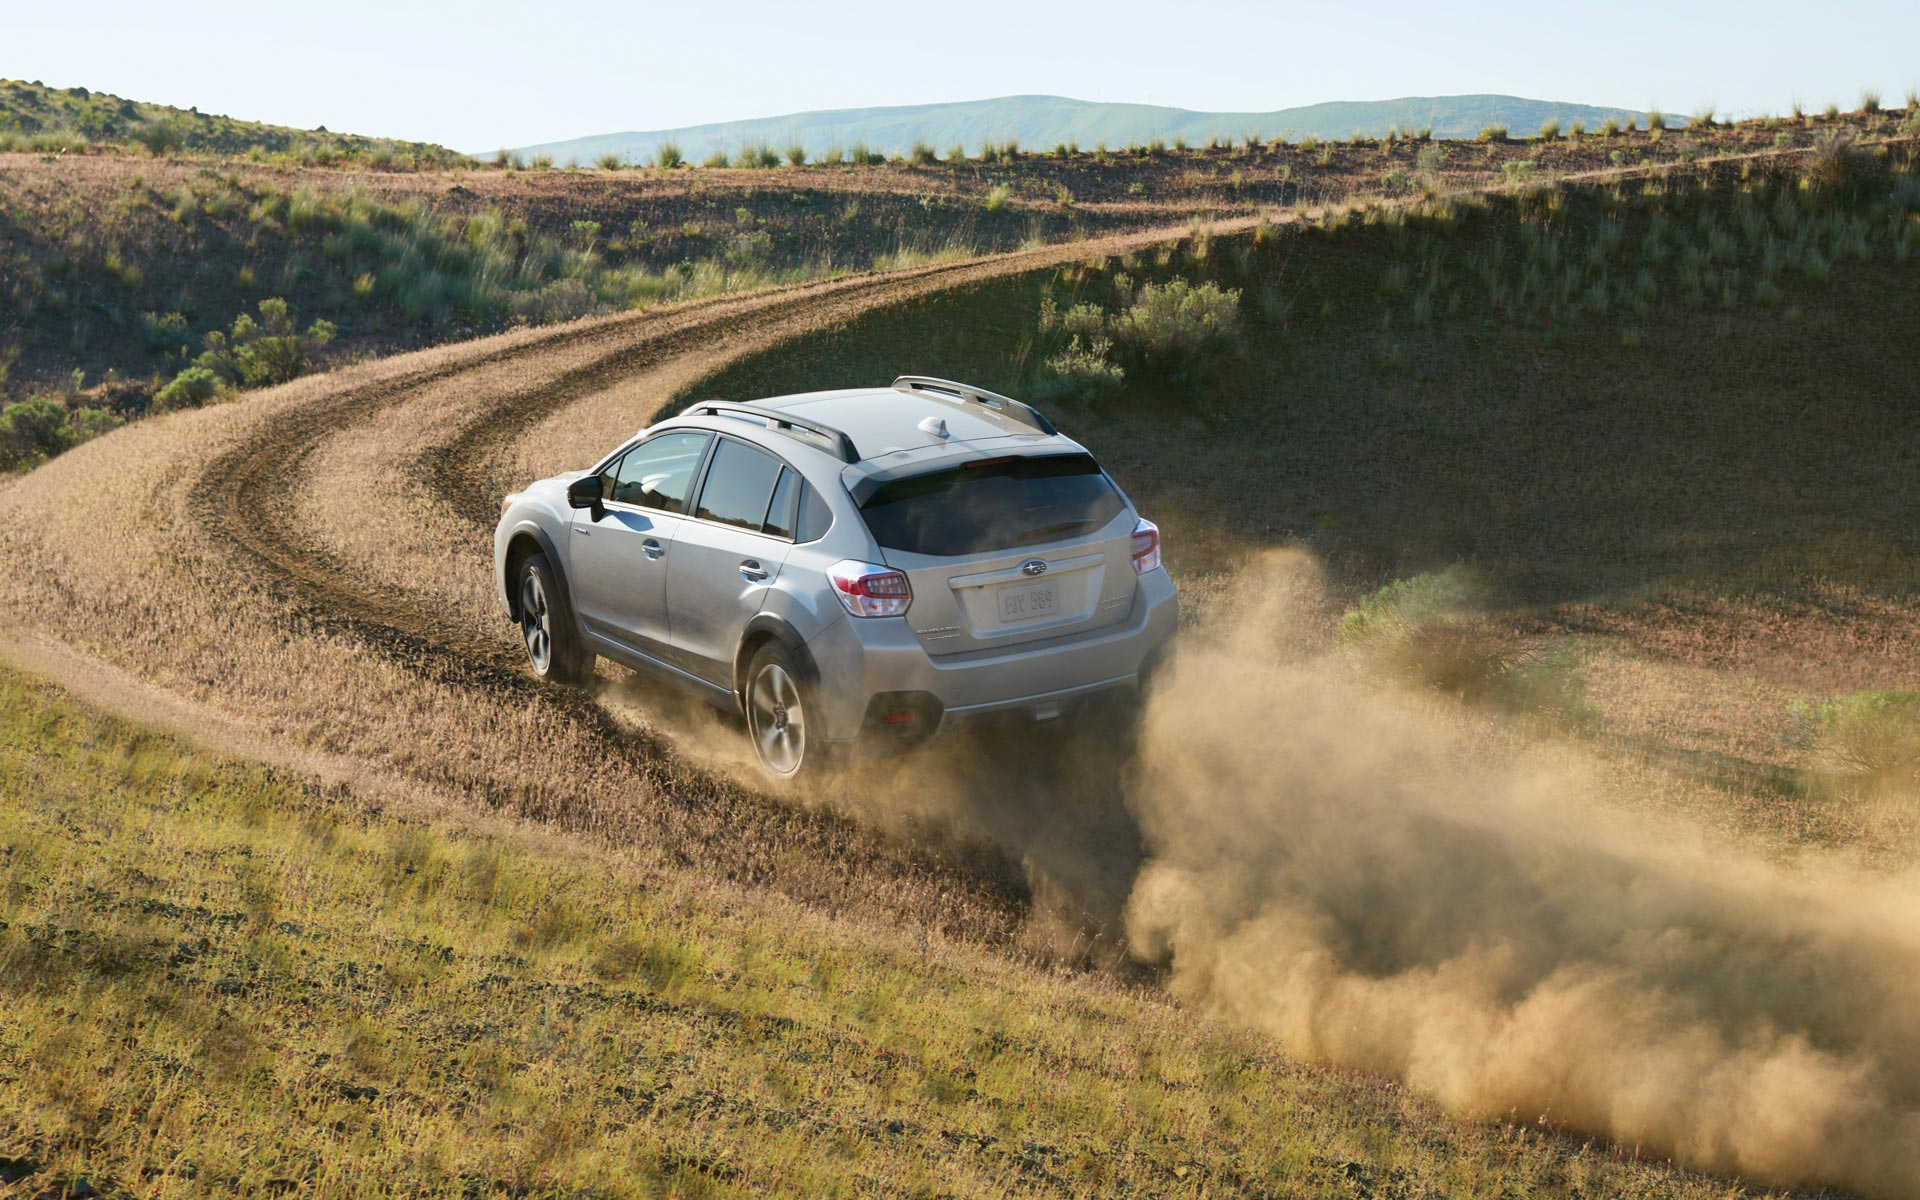 2016 Subaru Crosstrek Hybrid © Fuji Heavy Industries, Ltd.